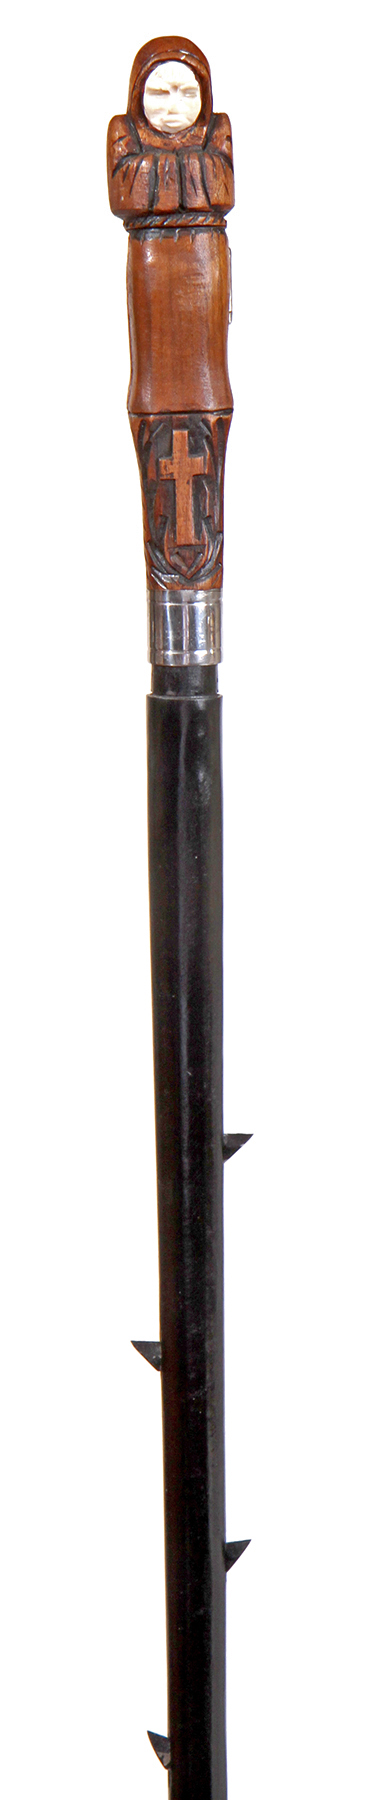 Antique and Quality Modern Cane Auction - 141.jpg